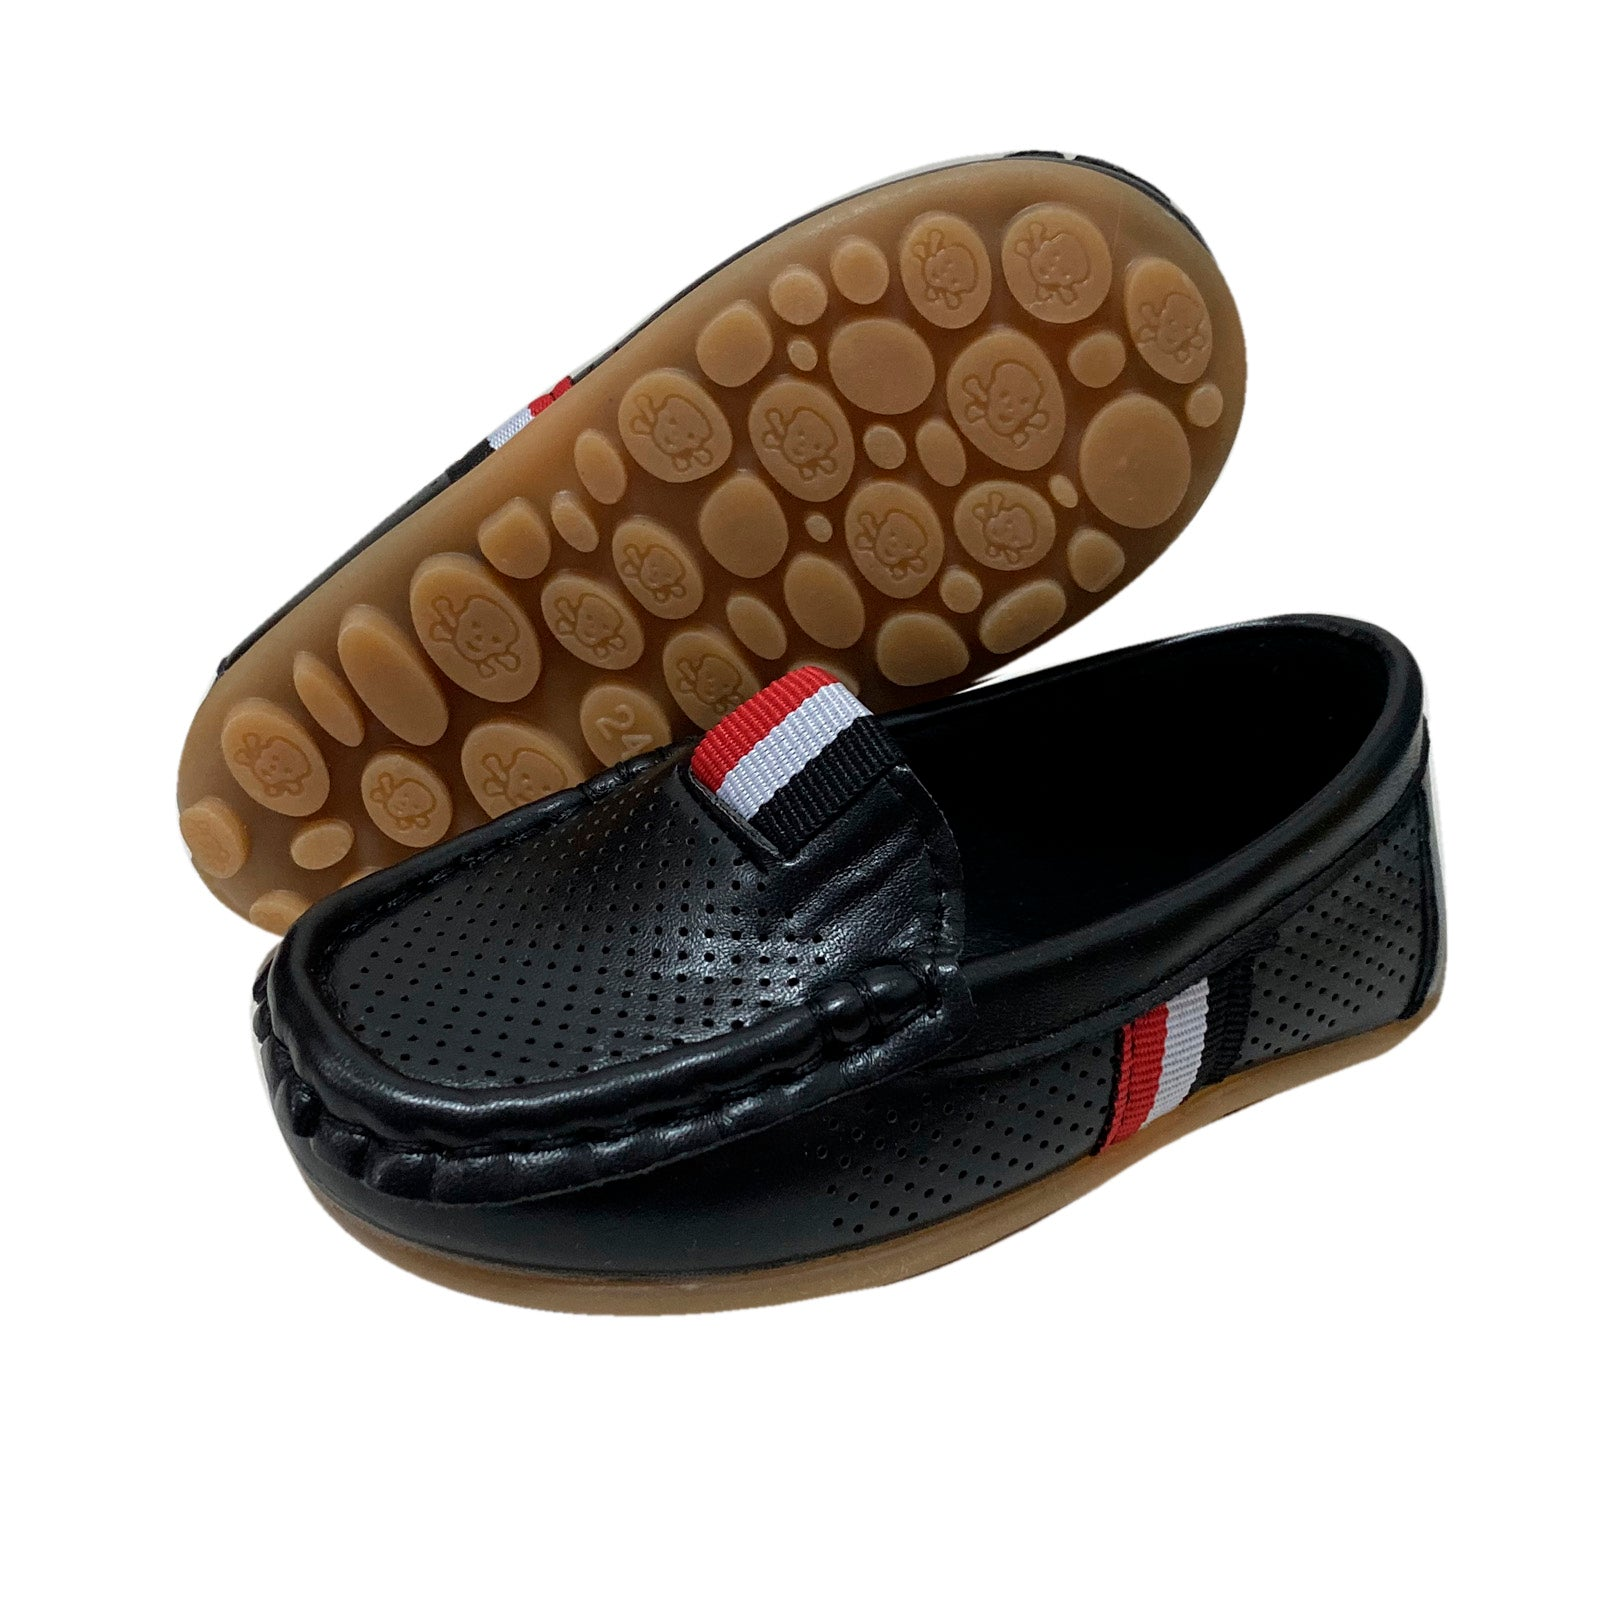 S168 Moccasin Softee Tri-Black (EU21-30)